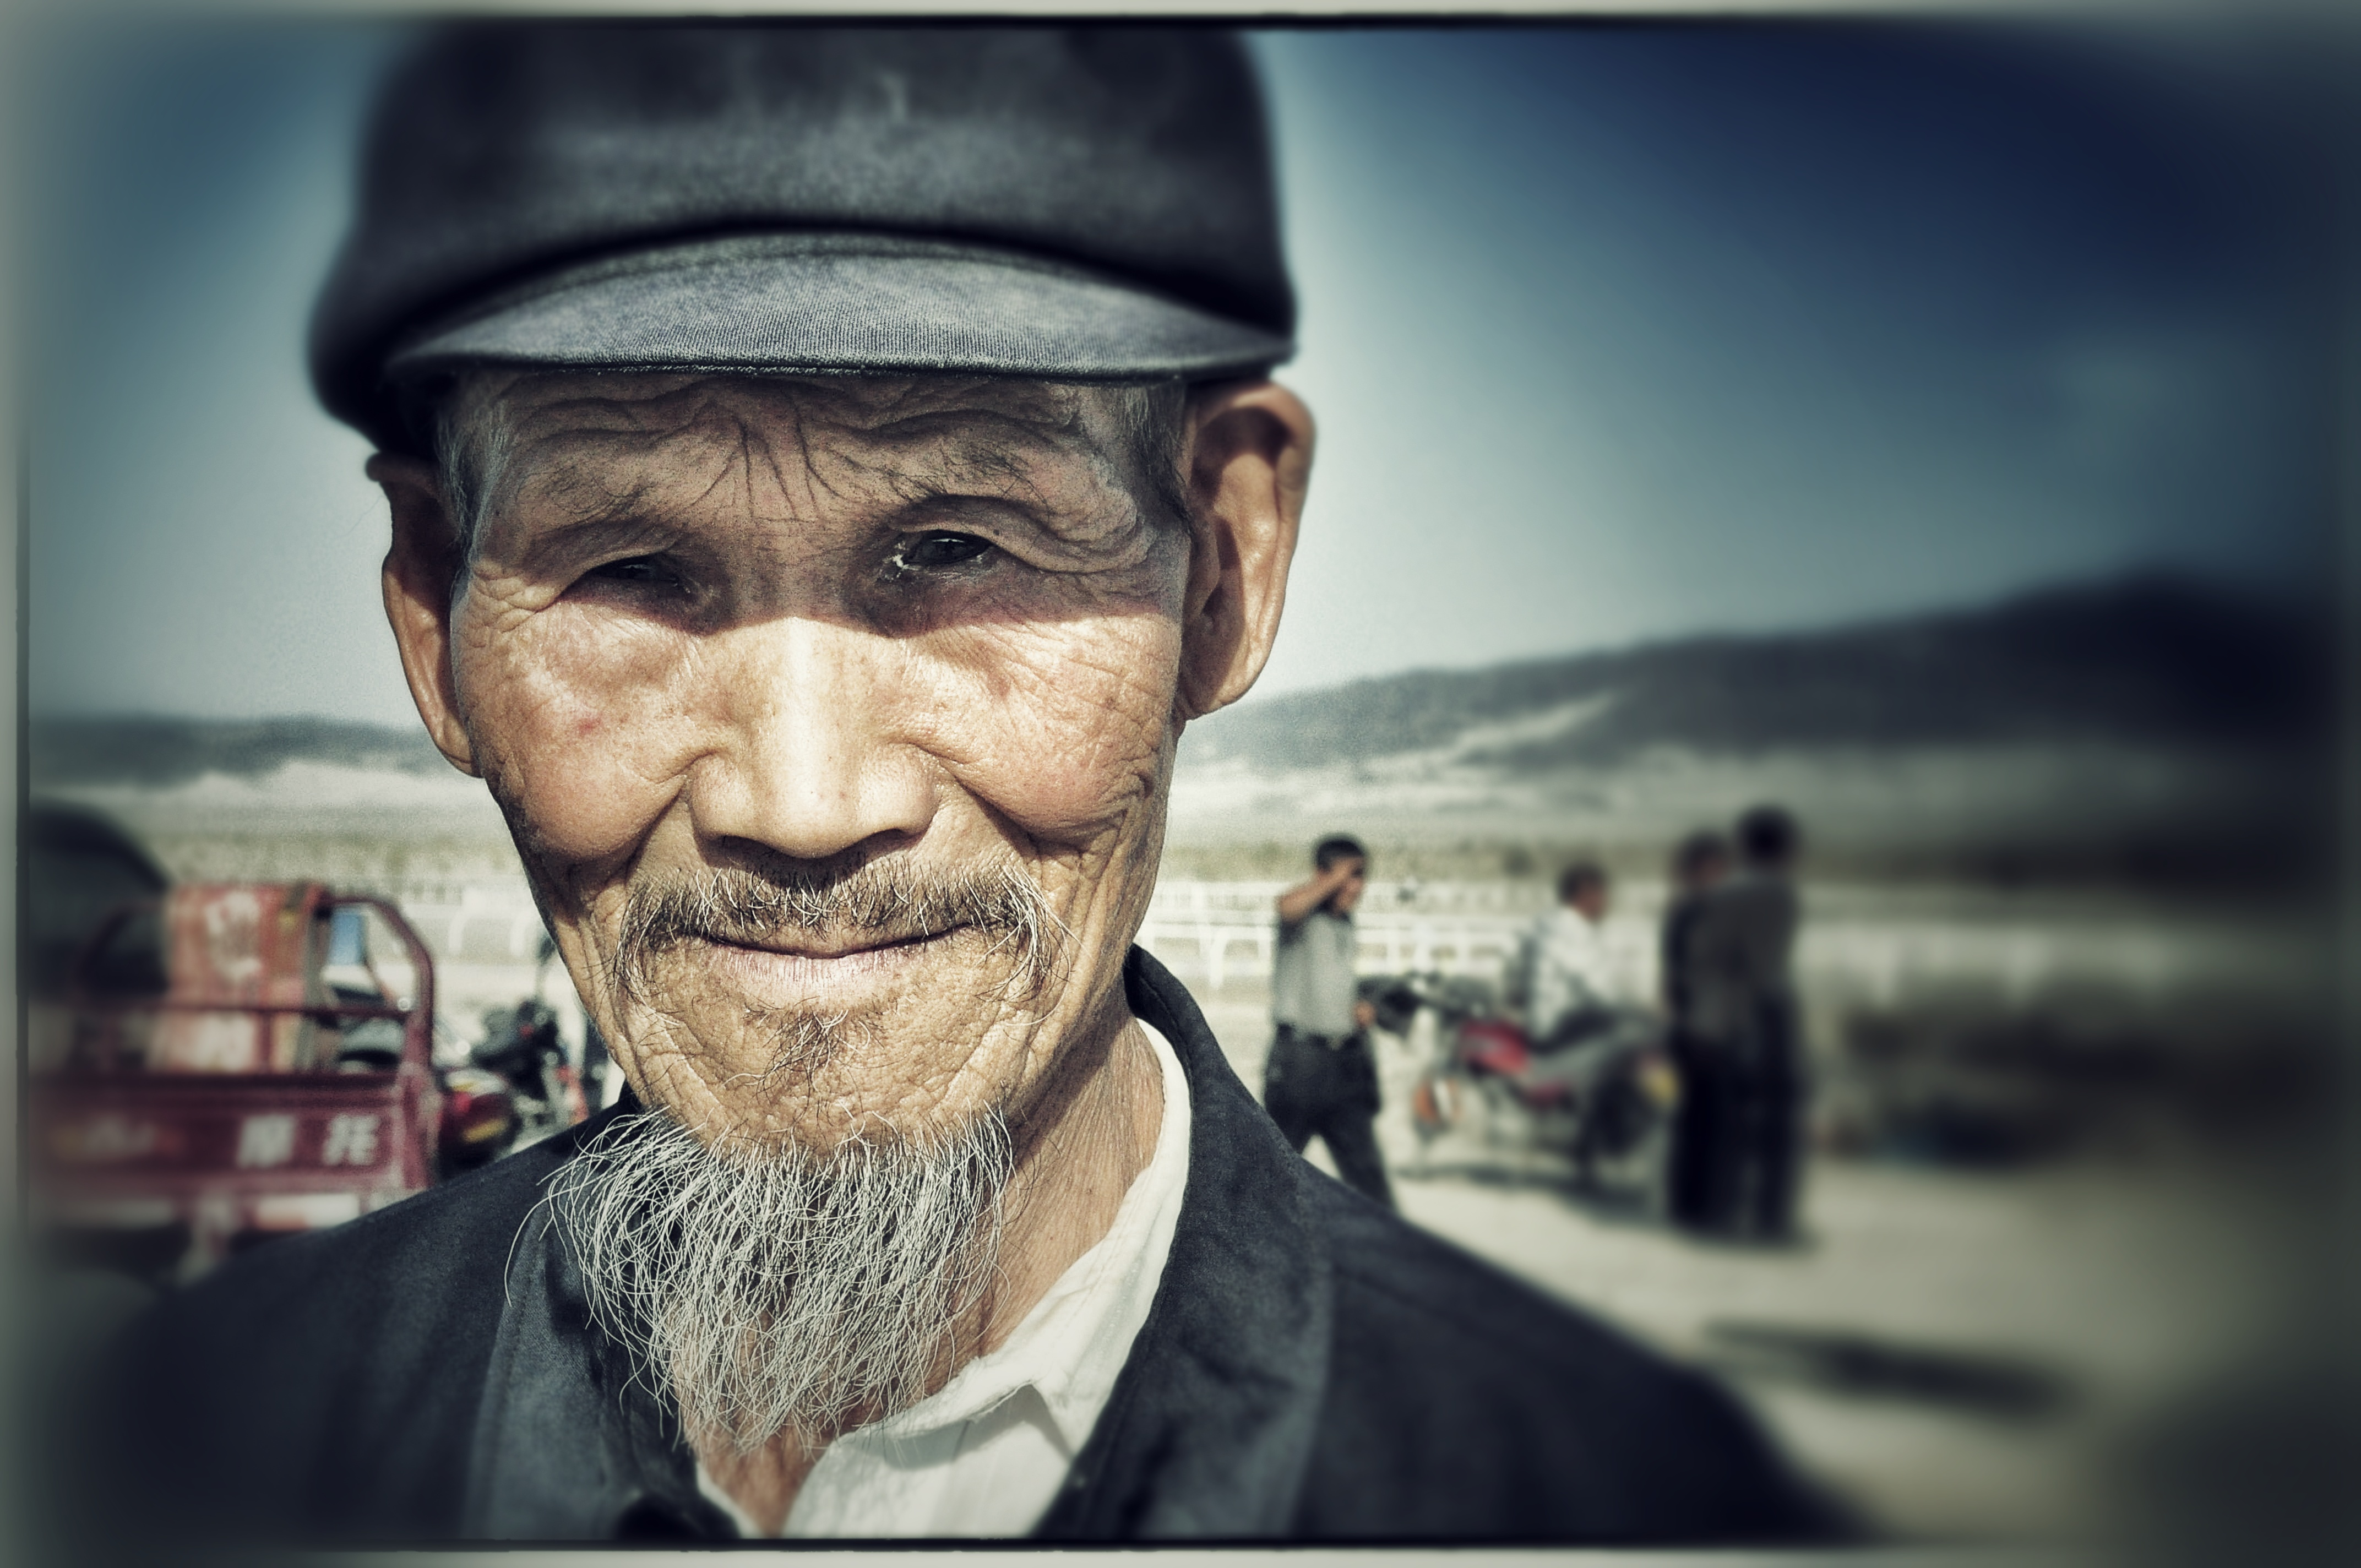 Chinese Portraits : Old Han Man - Portraits from diverse ethnic origins like Uyghur, Han, Kazak, Hui, Xibo and Mongol in China.